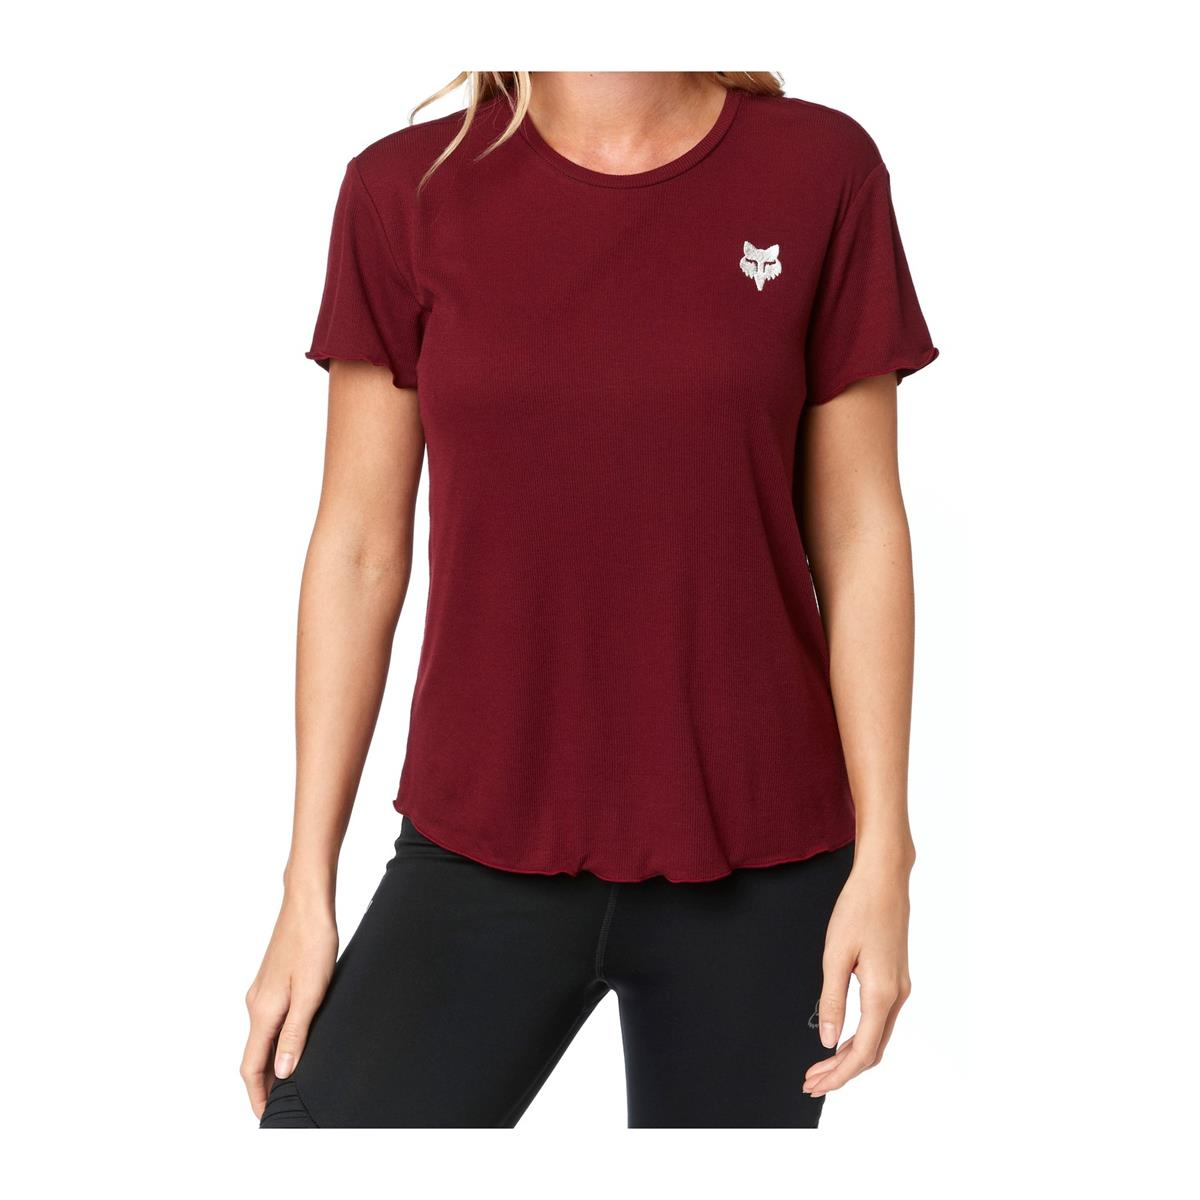 Fox Girls T-Shirt Pocono Cranberry